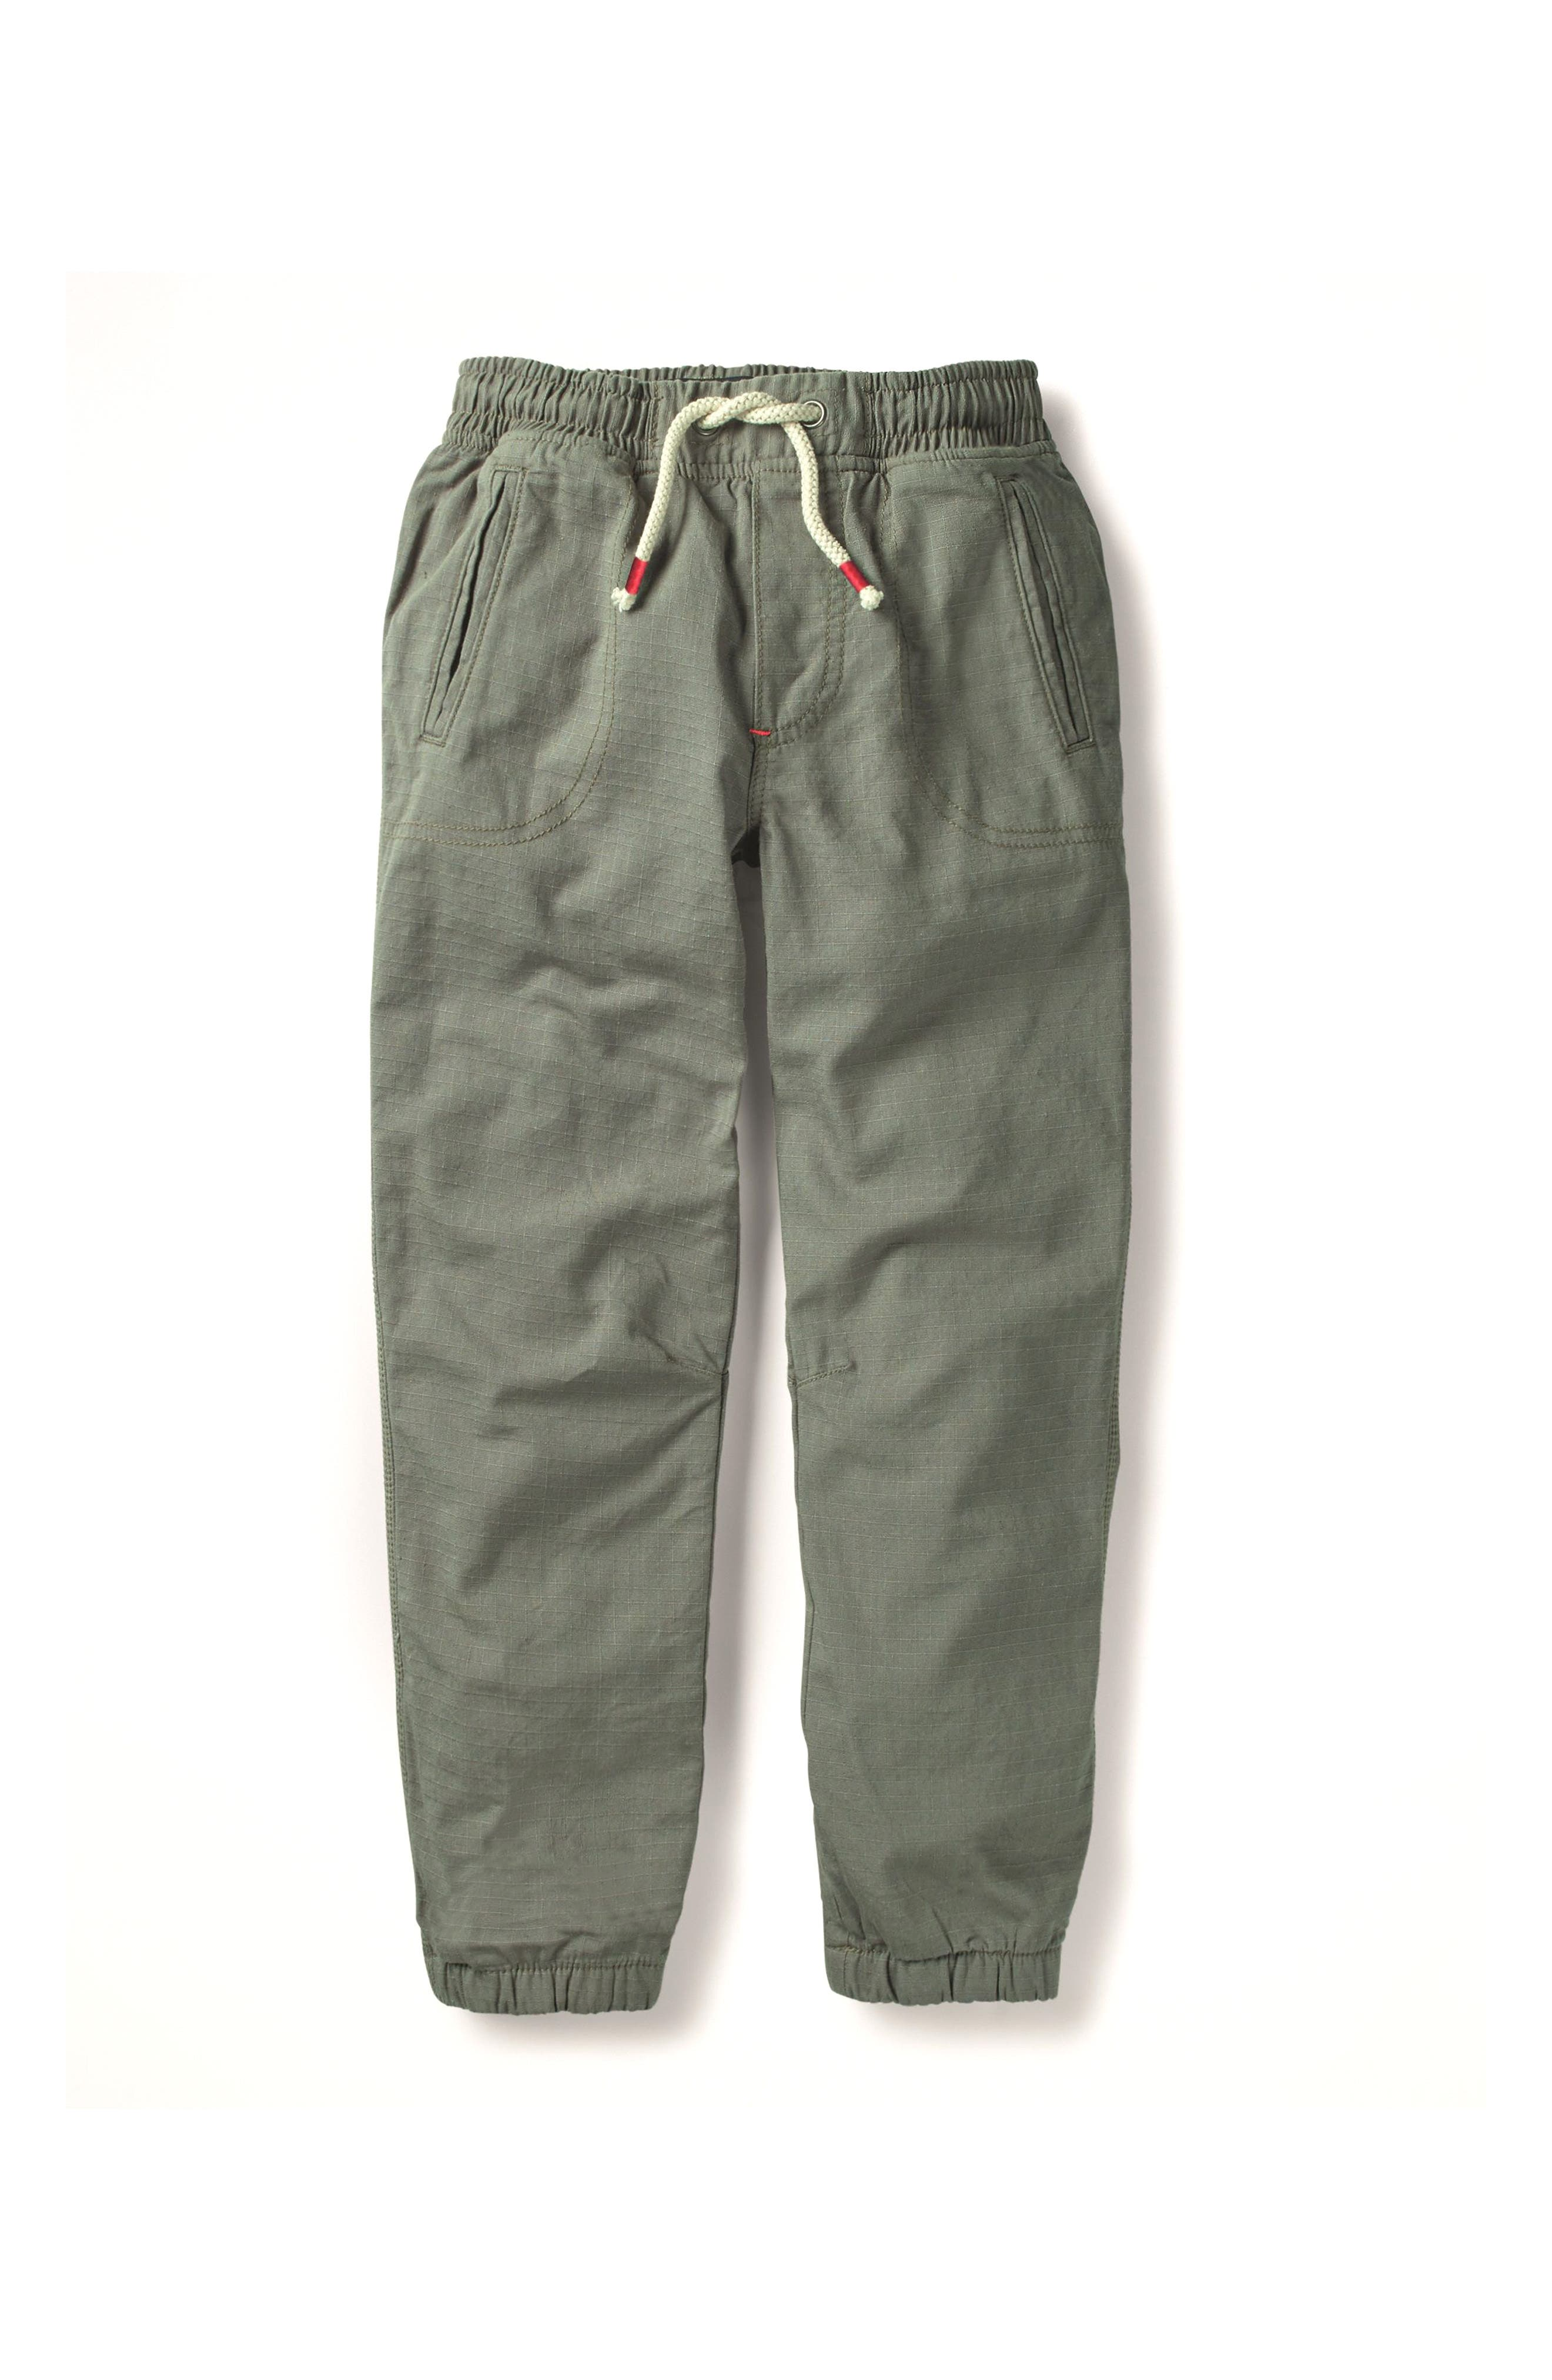 Lined Sweatpants,                             Main thumbnail 1, color,